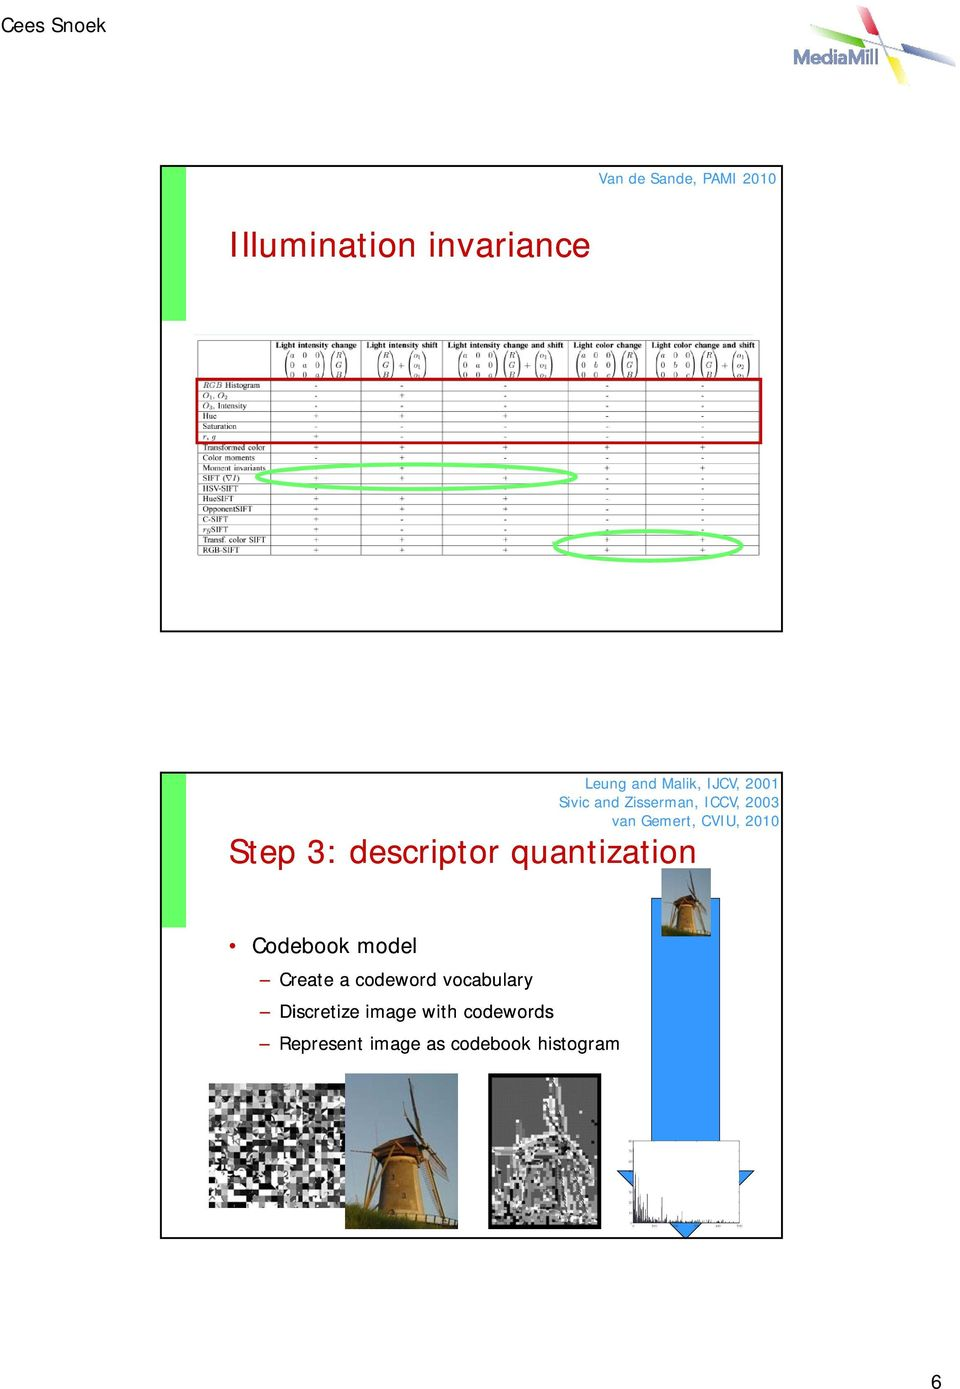 + + +/- +/- RGB-SIFT + + + + + Leung and Malik, IJCV, 2001 Sivic and Zisserman, ICCV, 2003 van Gemert, CVIU, 2010 Step 3: descriptor quantization